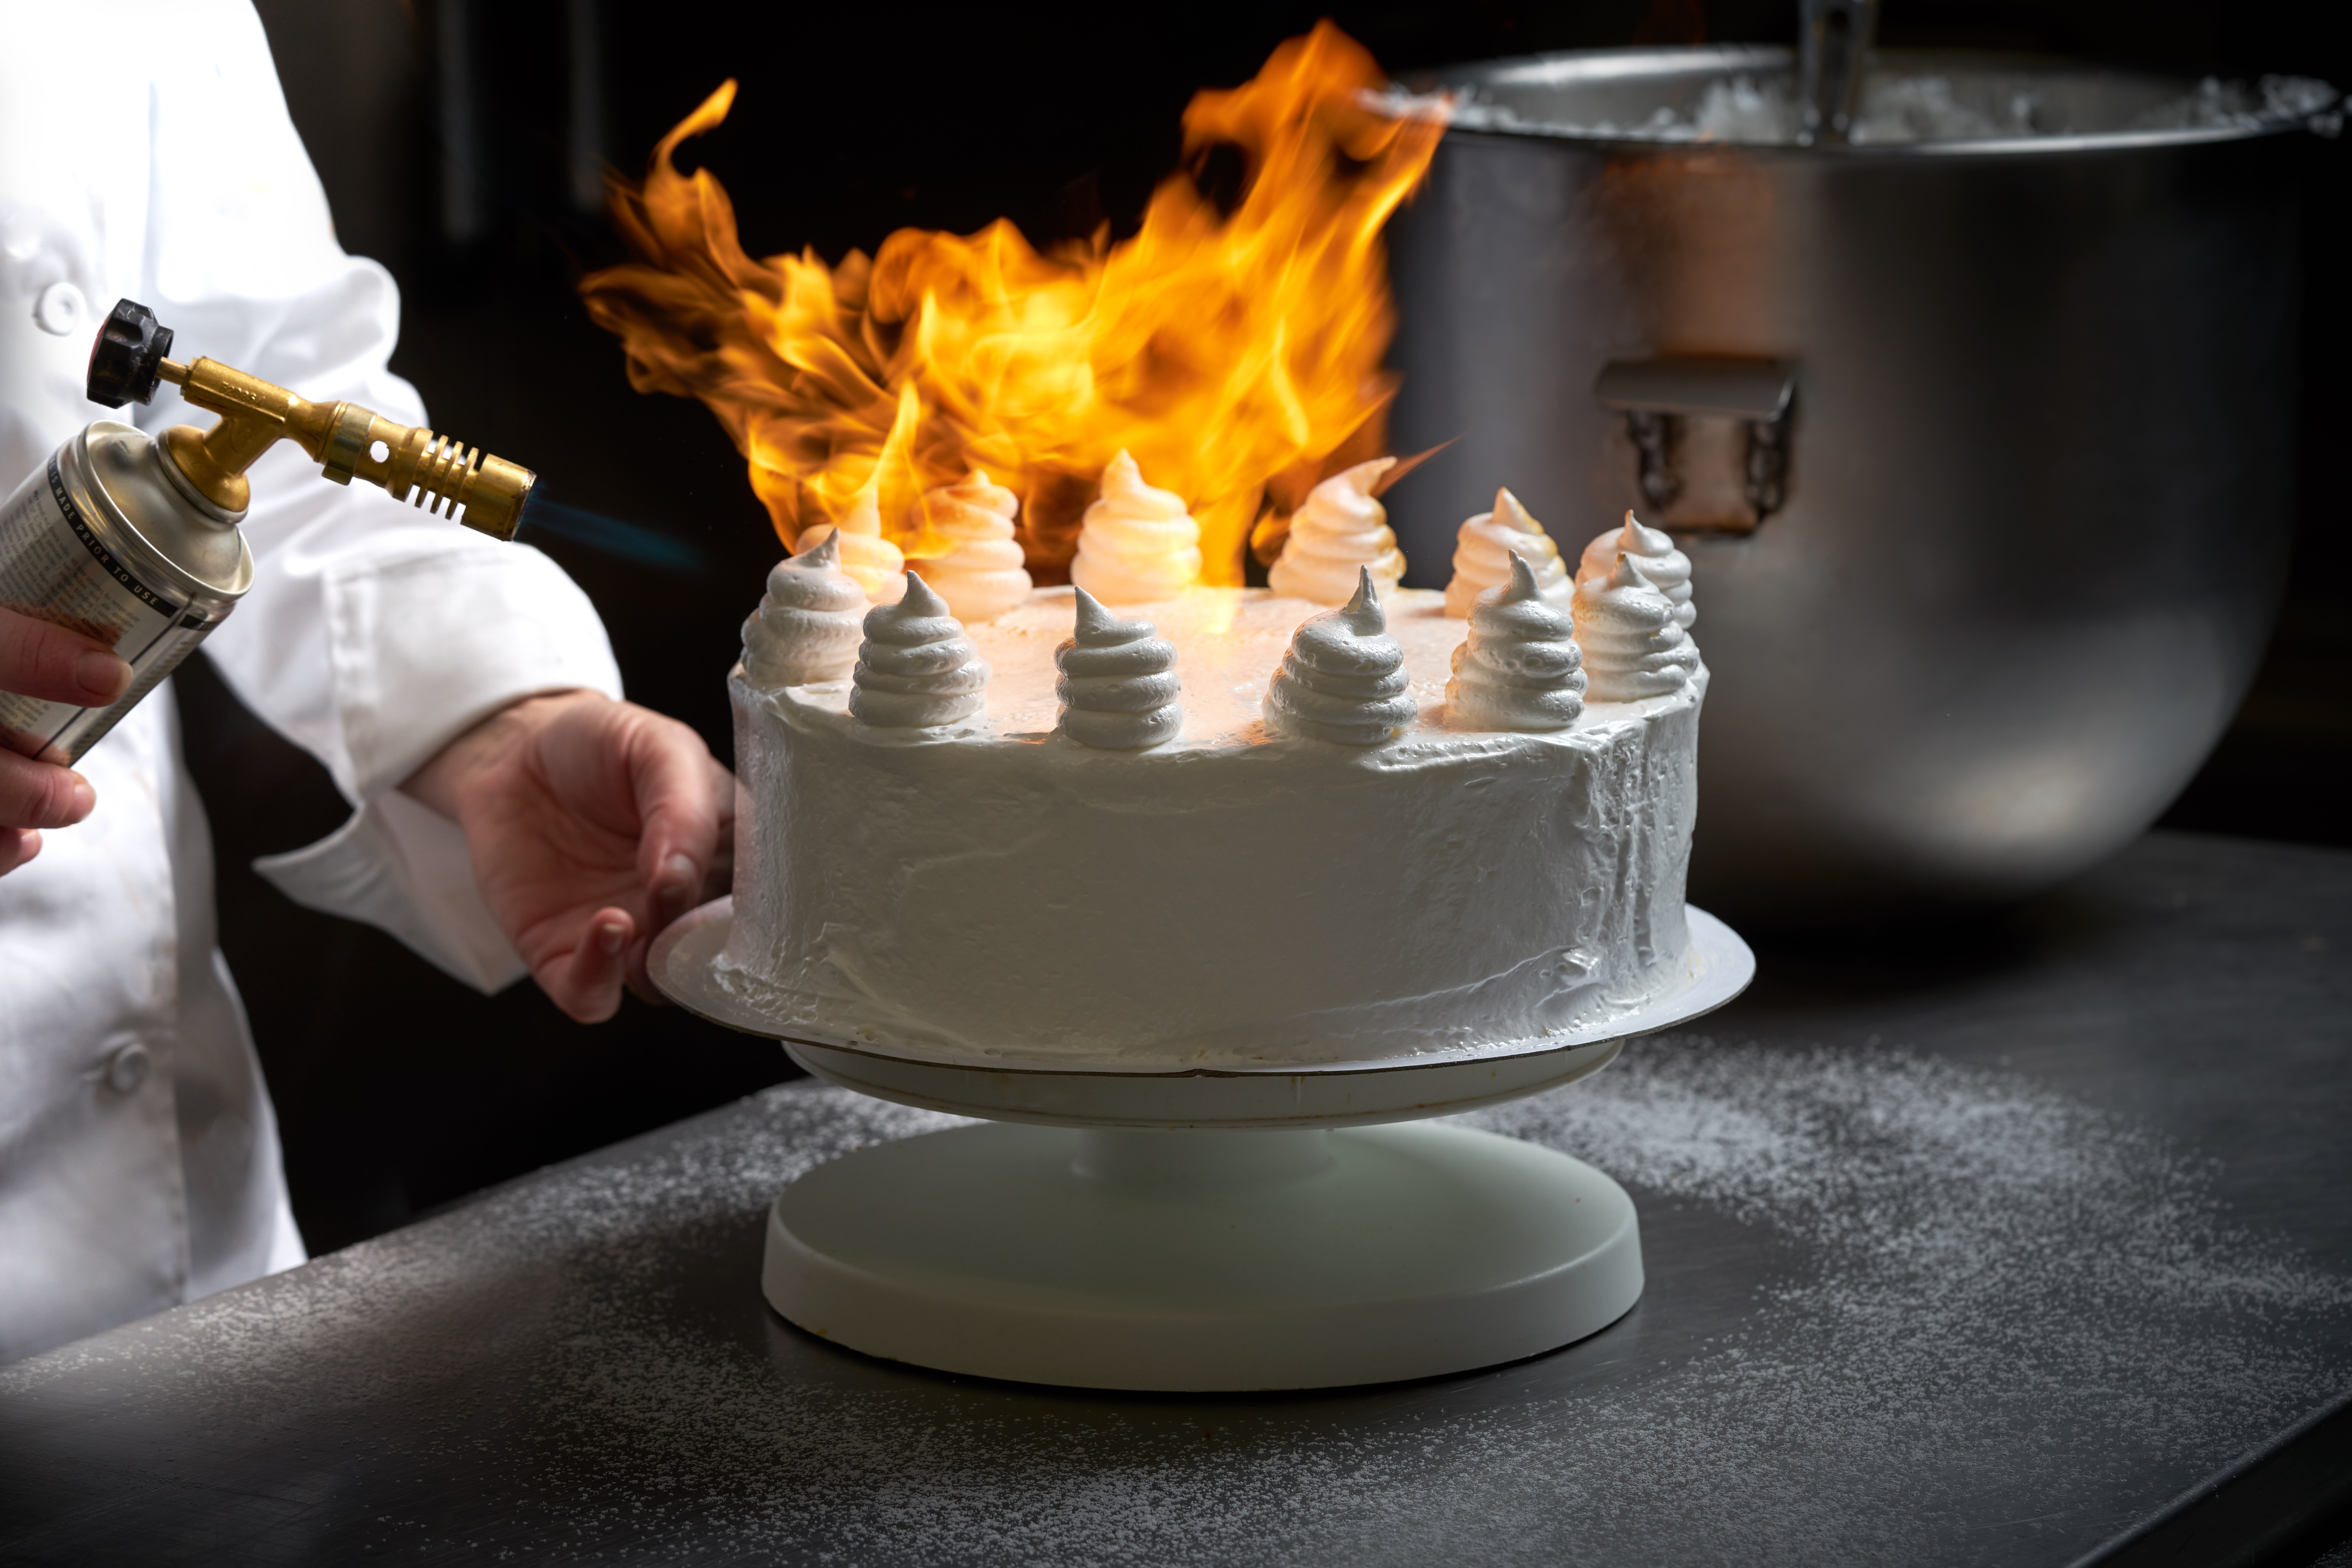 Produksjonbilder / production photography / cooking photography / flaming / cake / icing